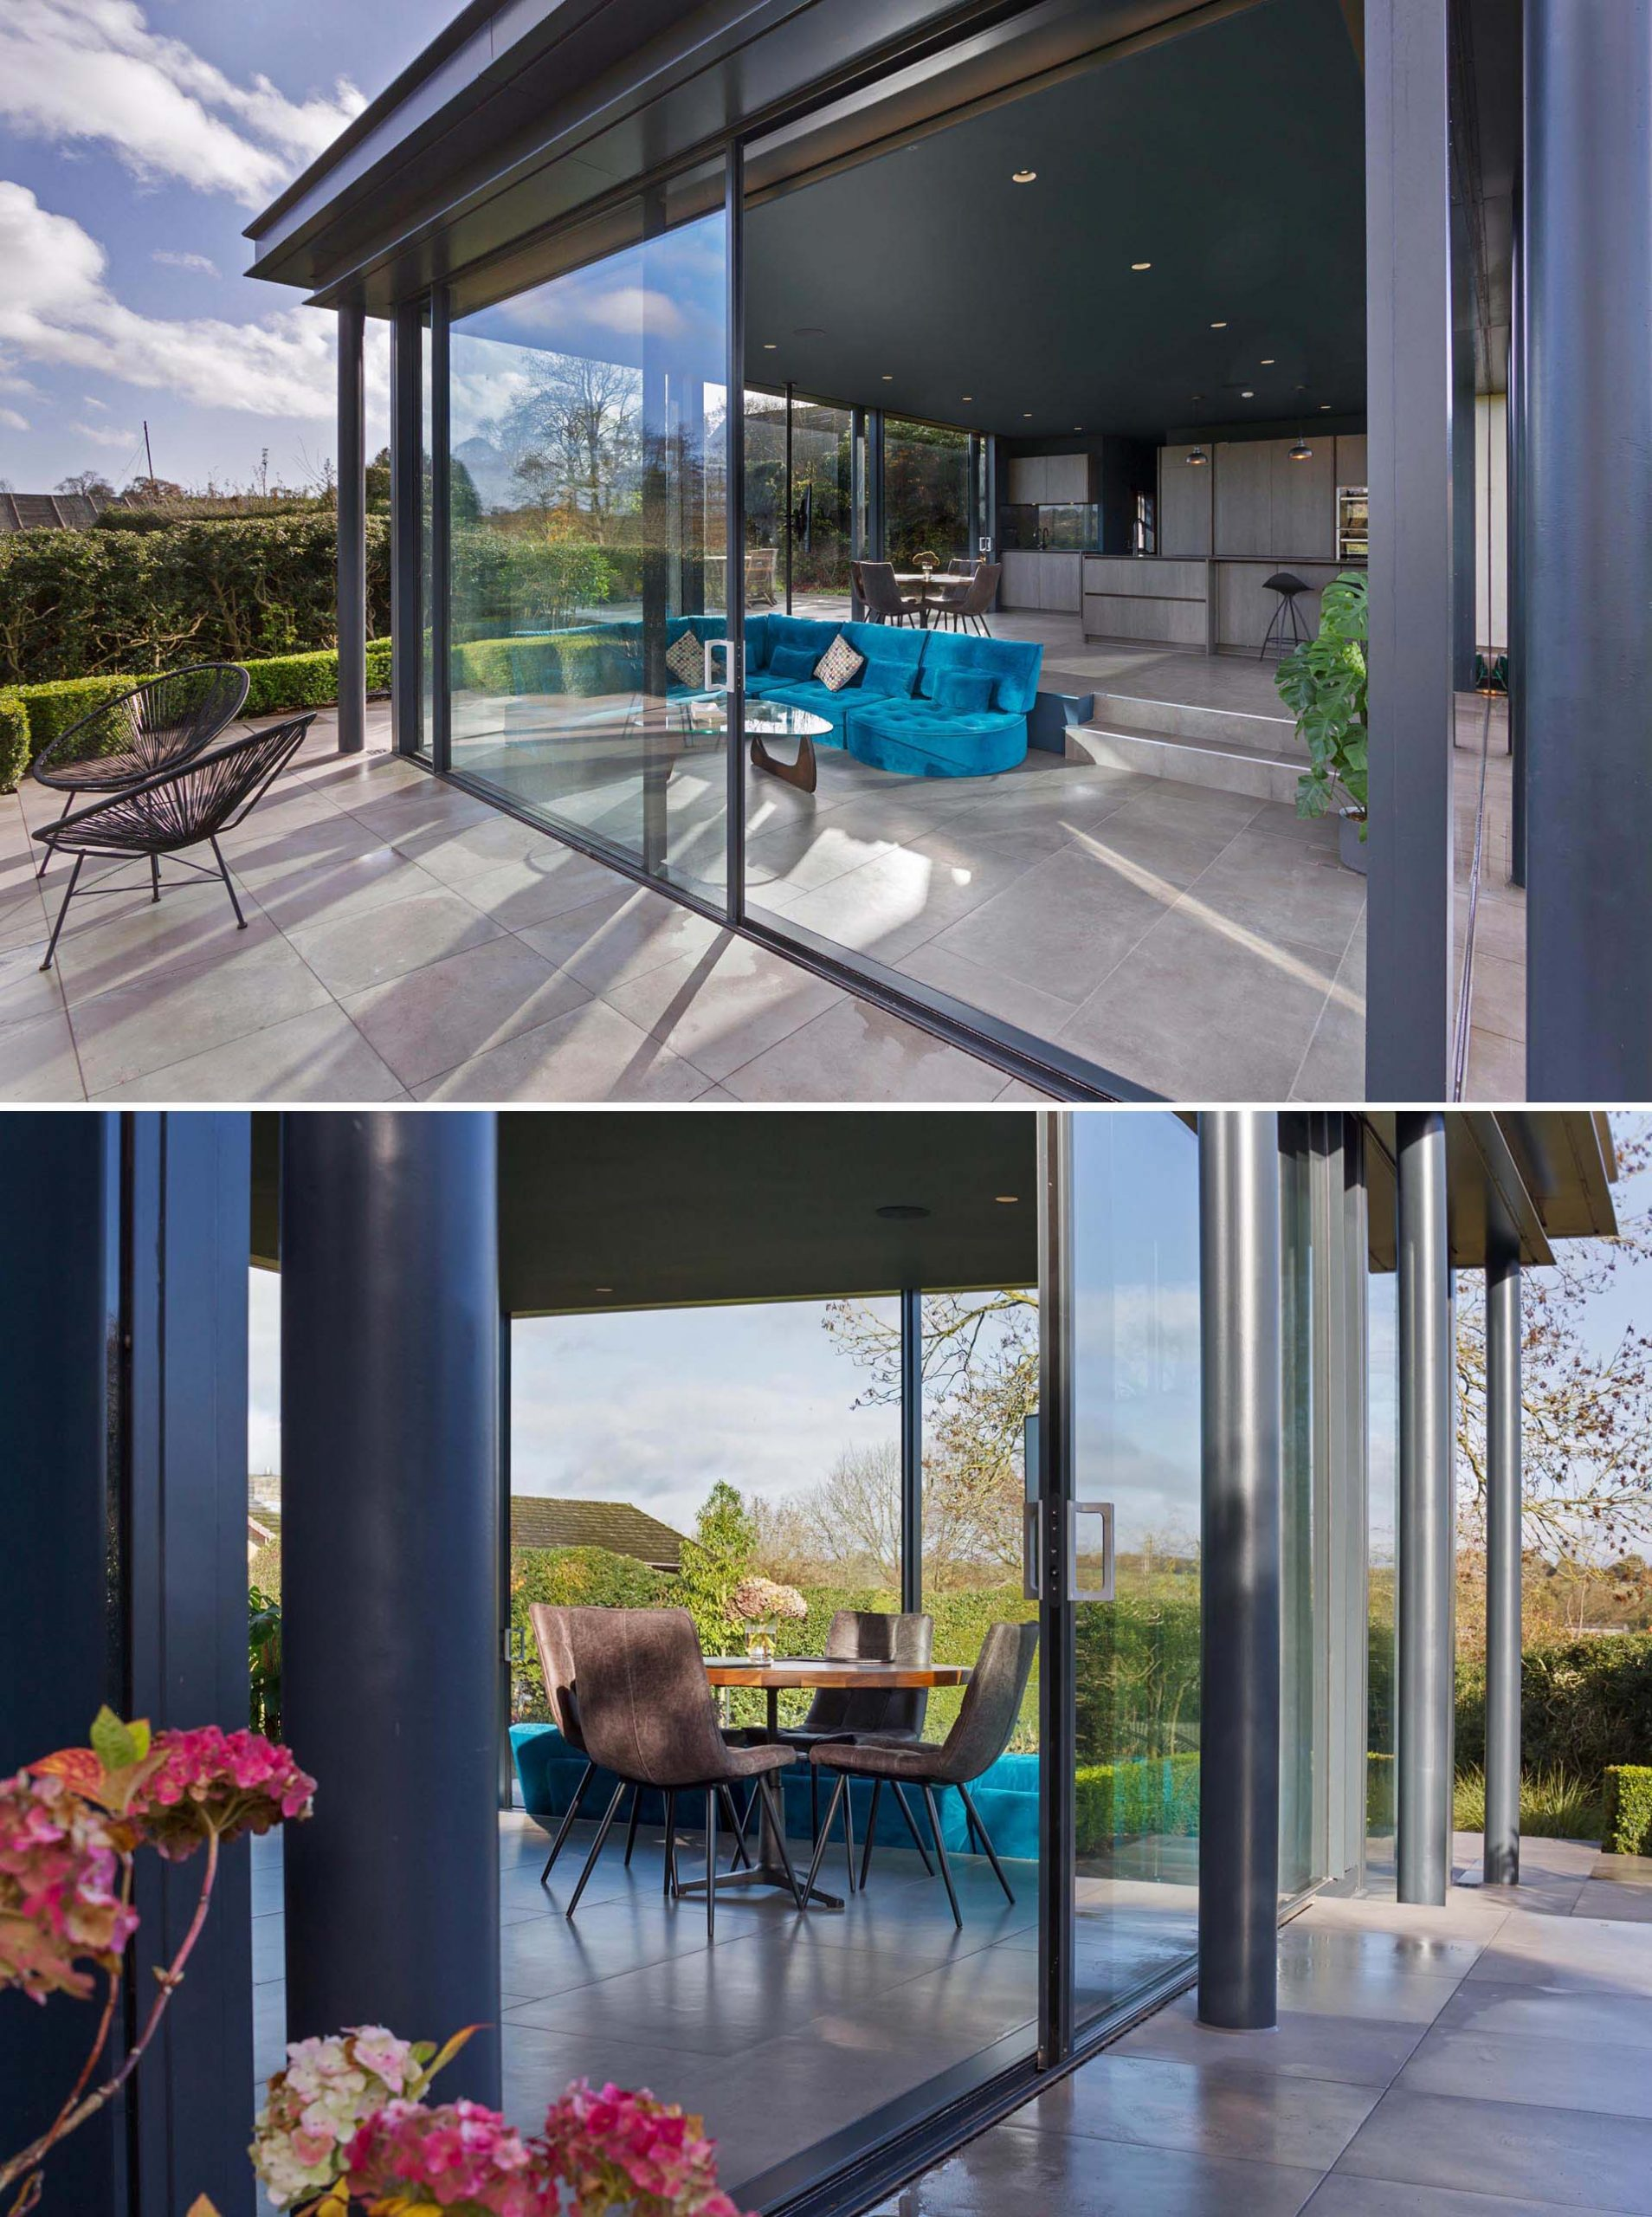 The floor to ceiling glazed doors of this modern addition provide an abundance of natural light and provide the connection to the garden that was desired.